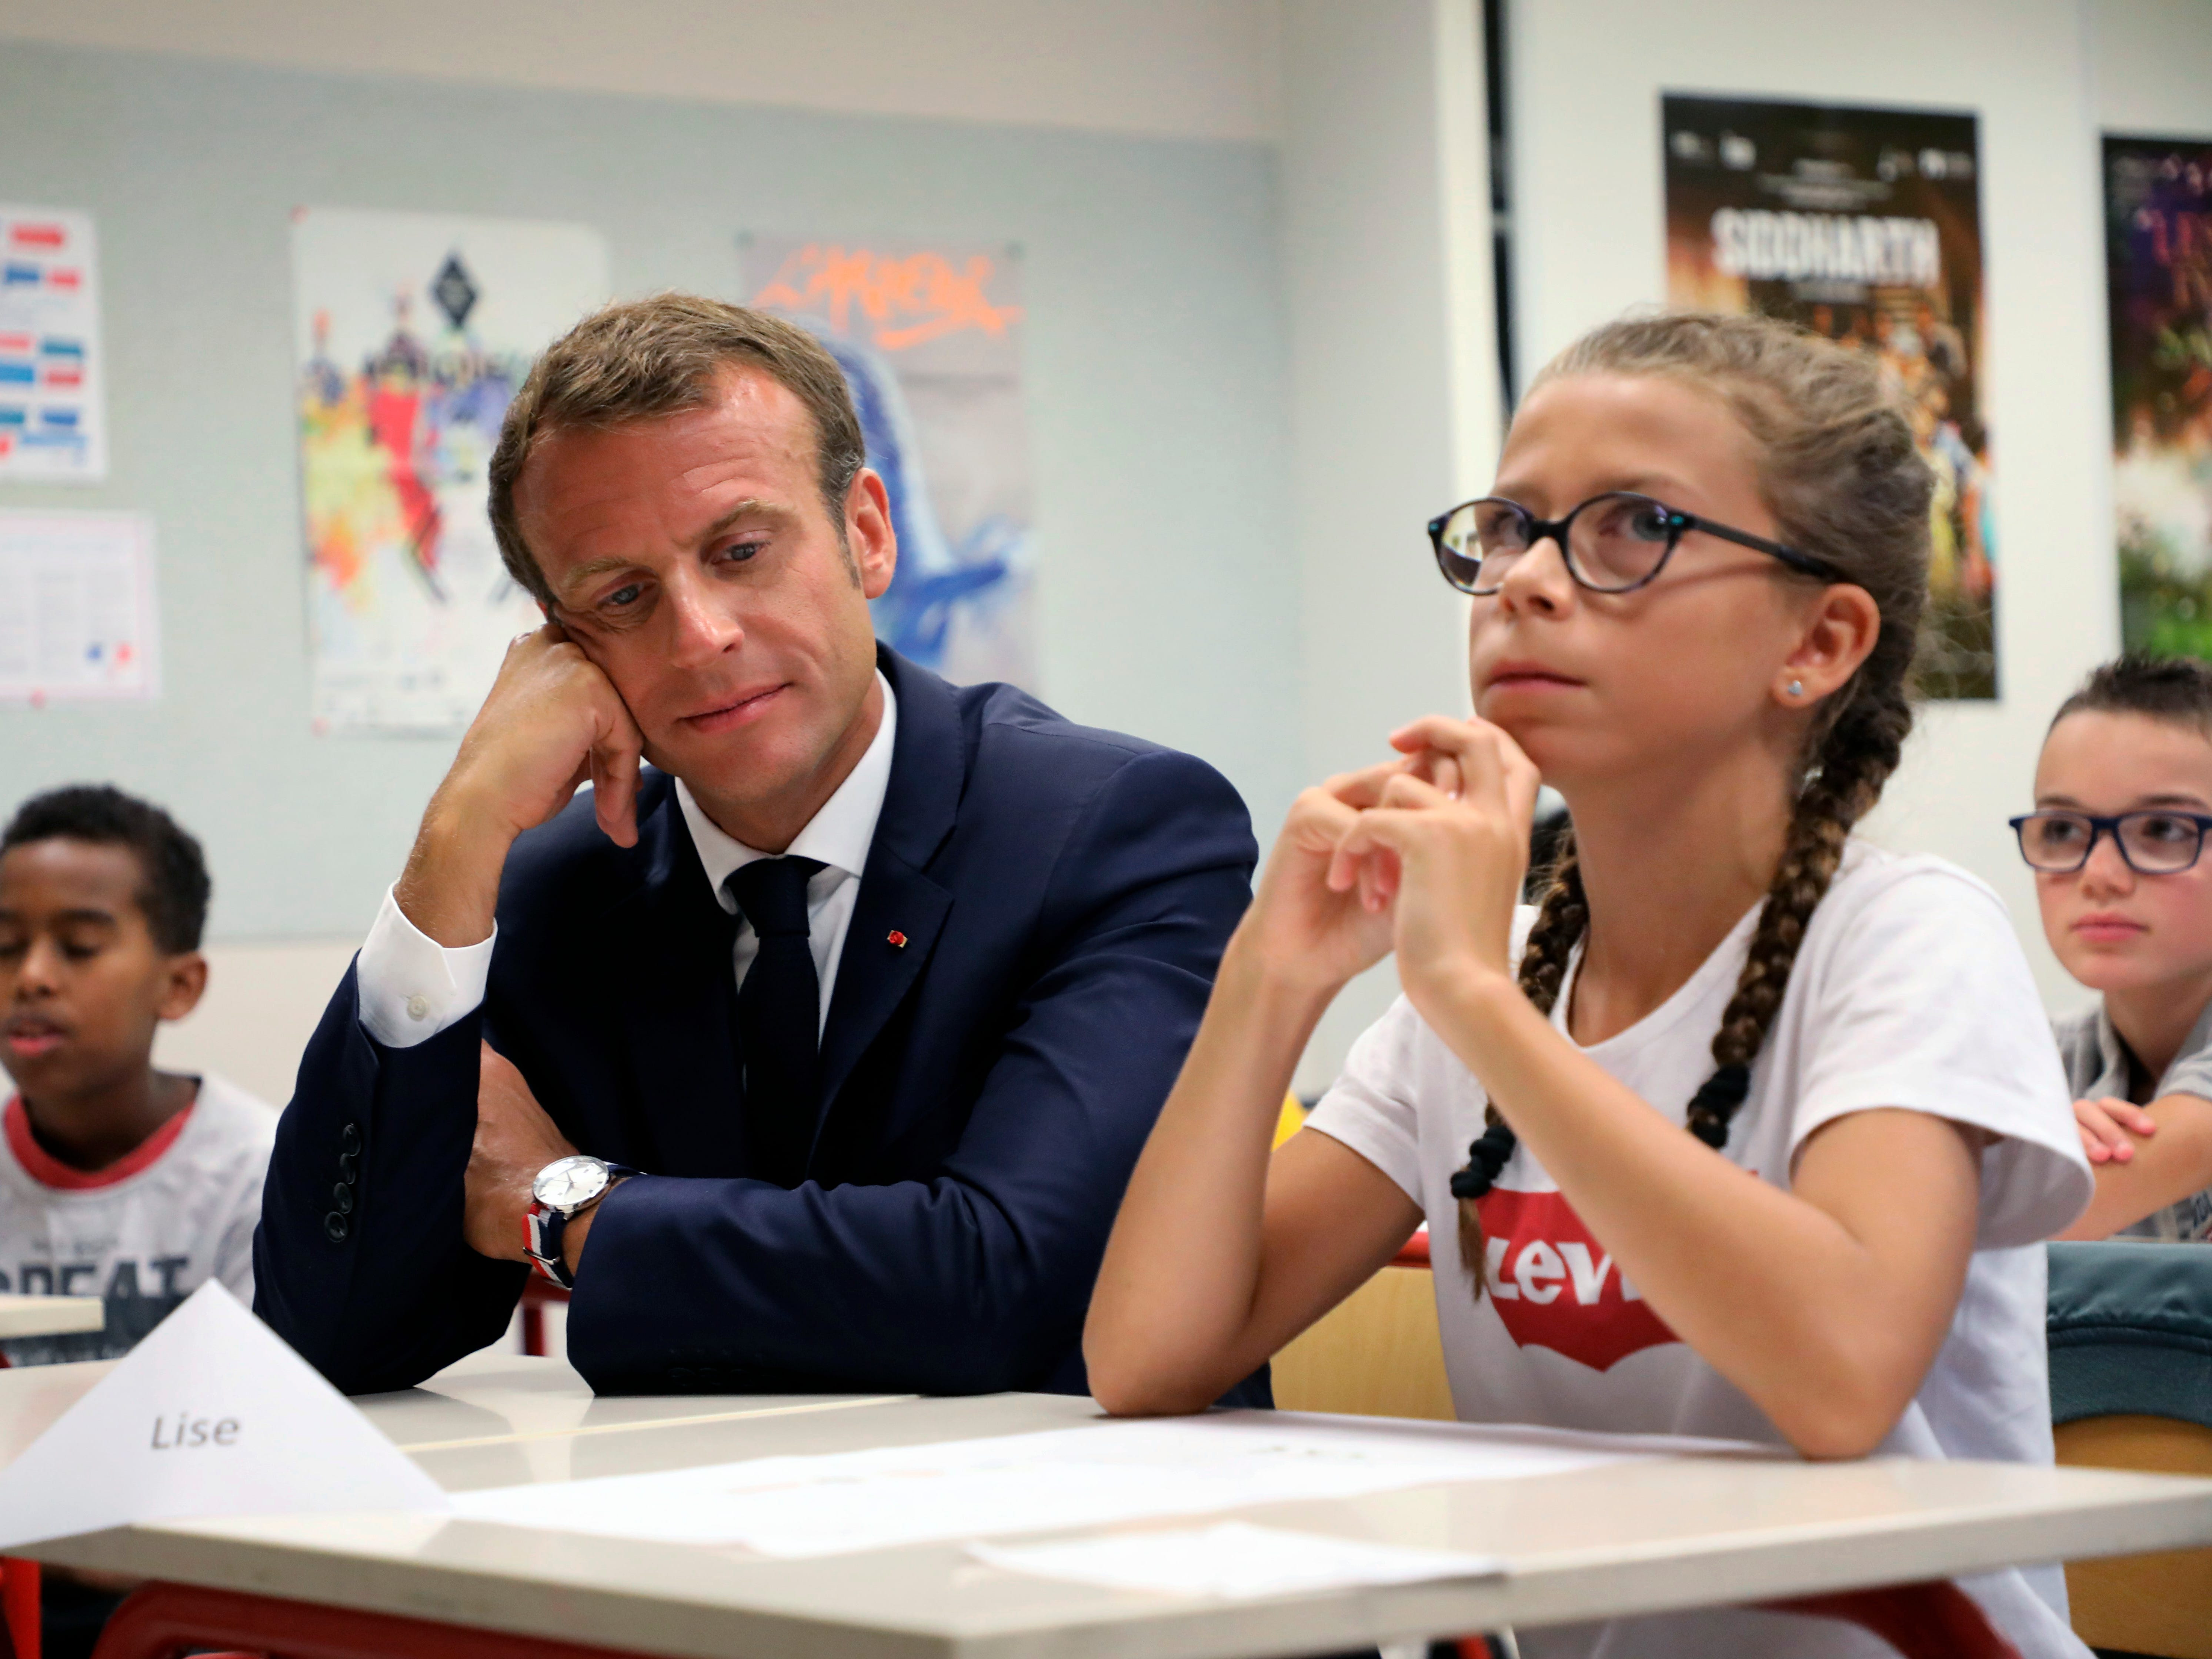 French president Emmanuel Macron, left, sits next to a pupil in a classroom during his visit in a secondary school in Laval, western France, Monday, Sept. 3, 2018, at the start of the school year in France.